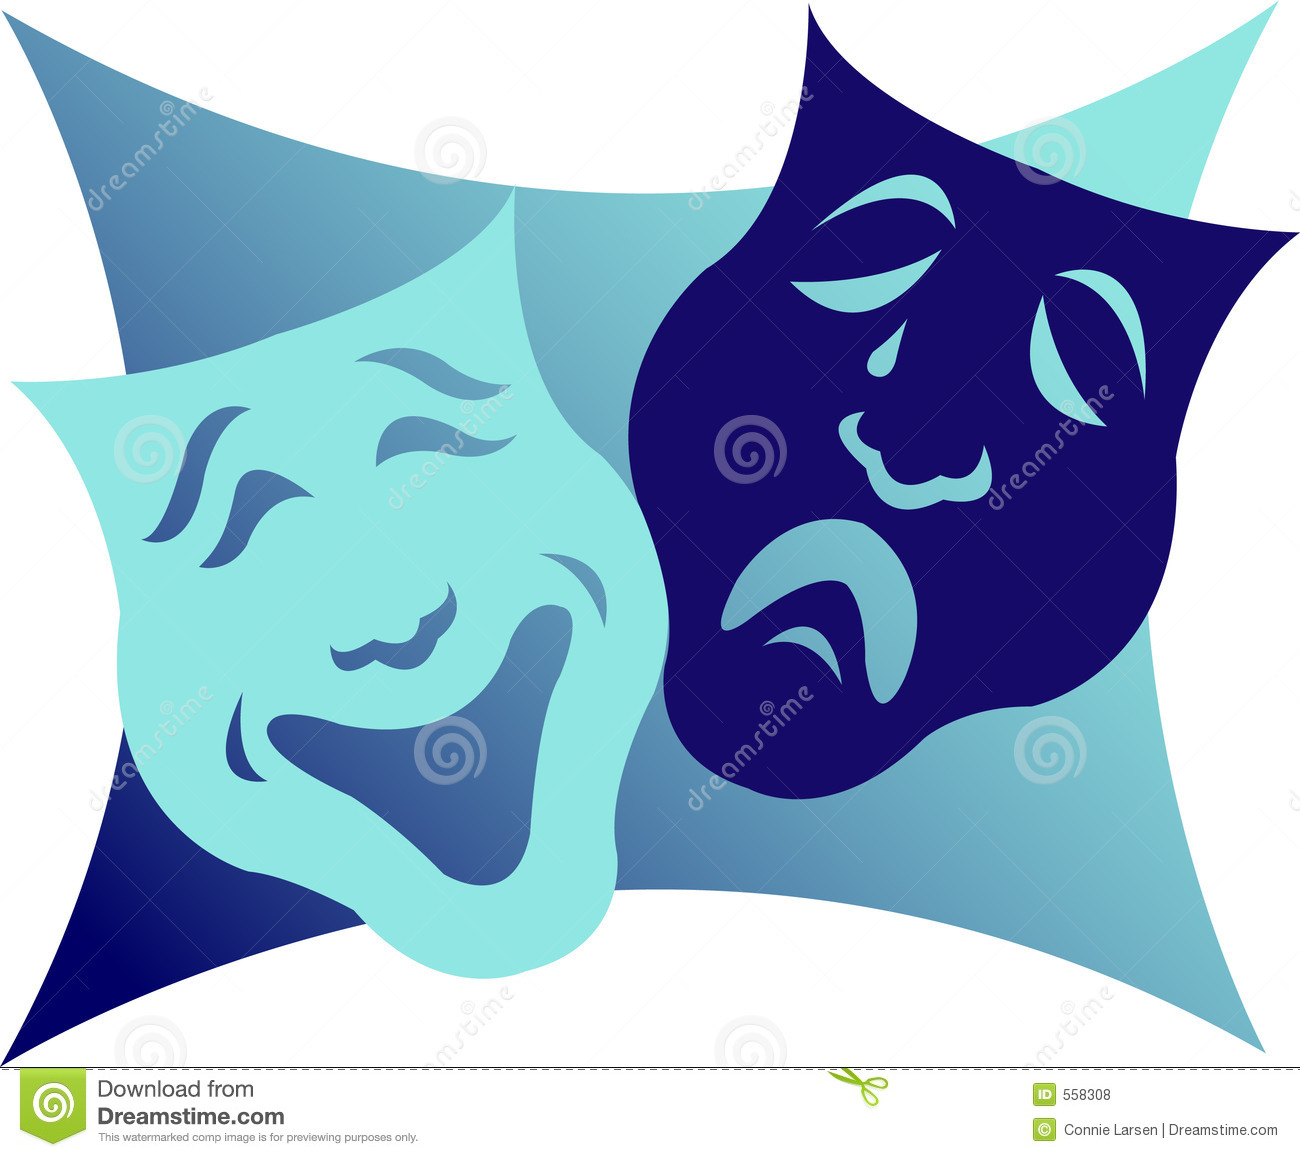 Illustration Of Comedy And Tragedy Masks Which Are A Symbol For The